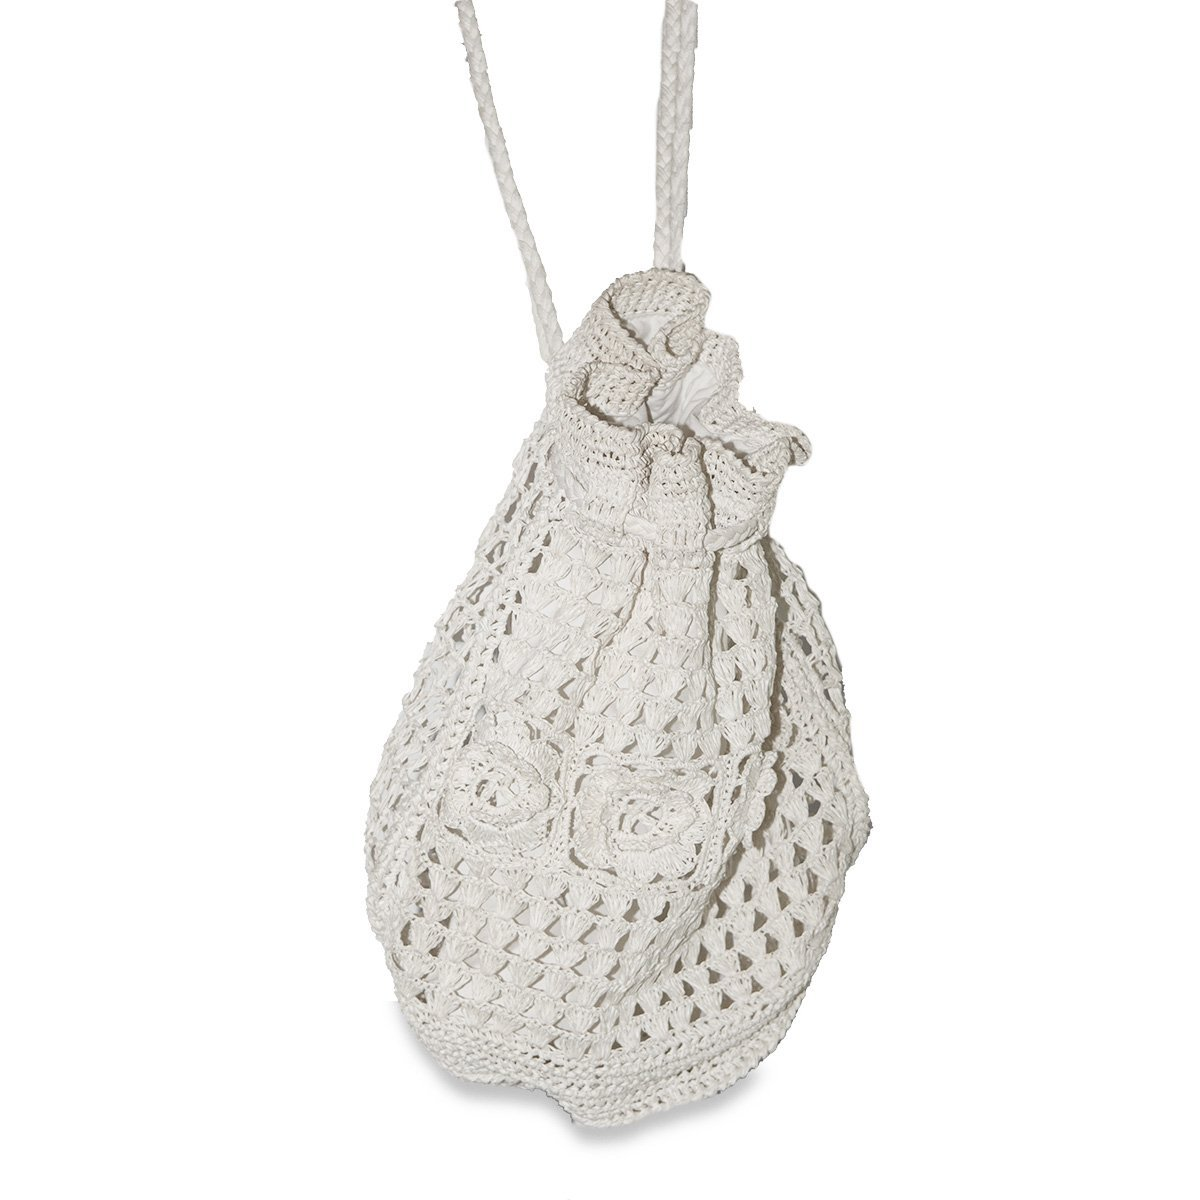 White Straw Macrame Backpack Handbag